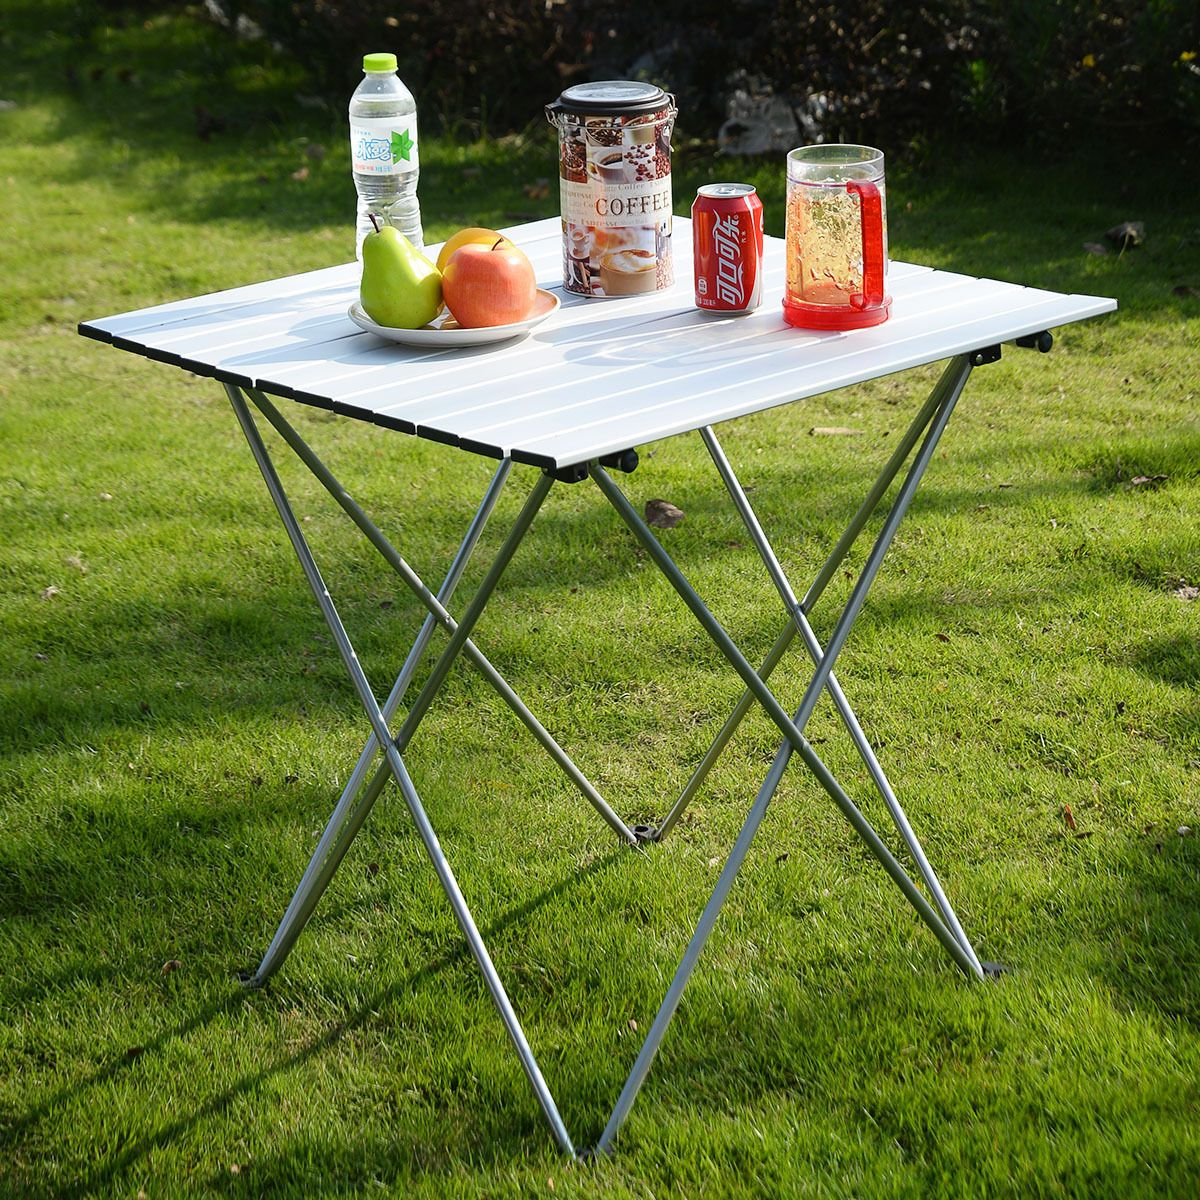 Kseven Aluminum Portable Roll Up Folding Table With Carrying Bag, Light  Weight Compact Camping Outdoor Indoor Picnic Garden Yard Lawn Patio Beach  Utility ...